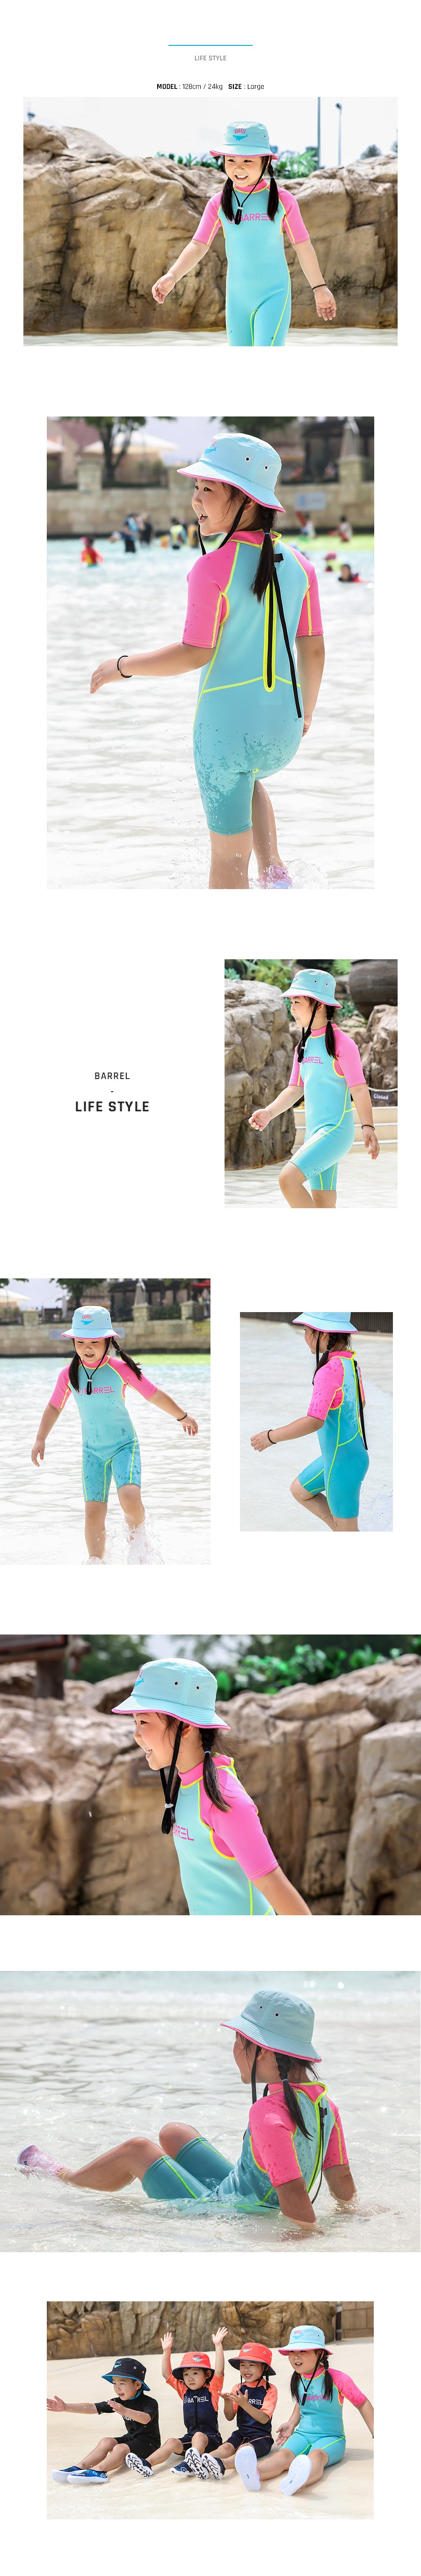 Barrel Kids 1mm Neoprene Spring Suit-MINT/PINK_image